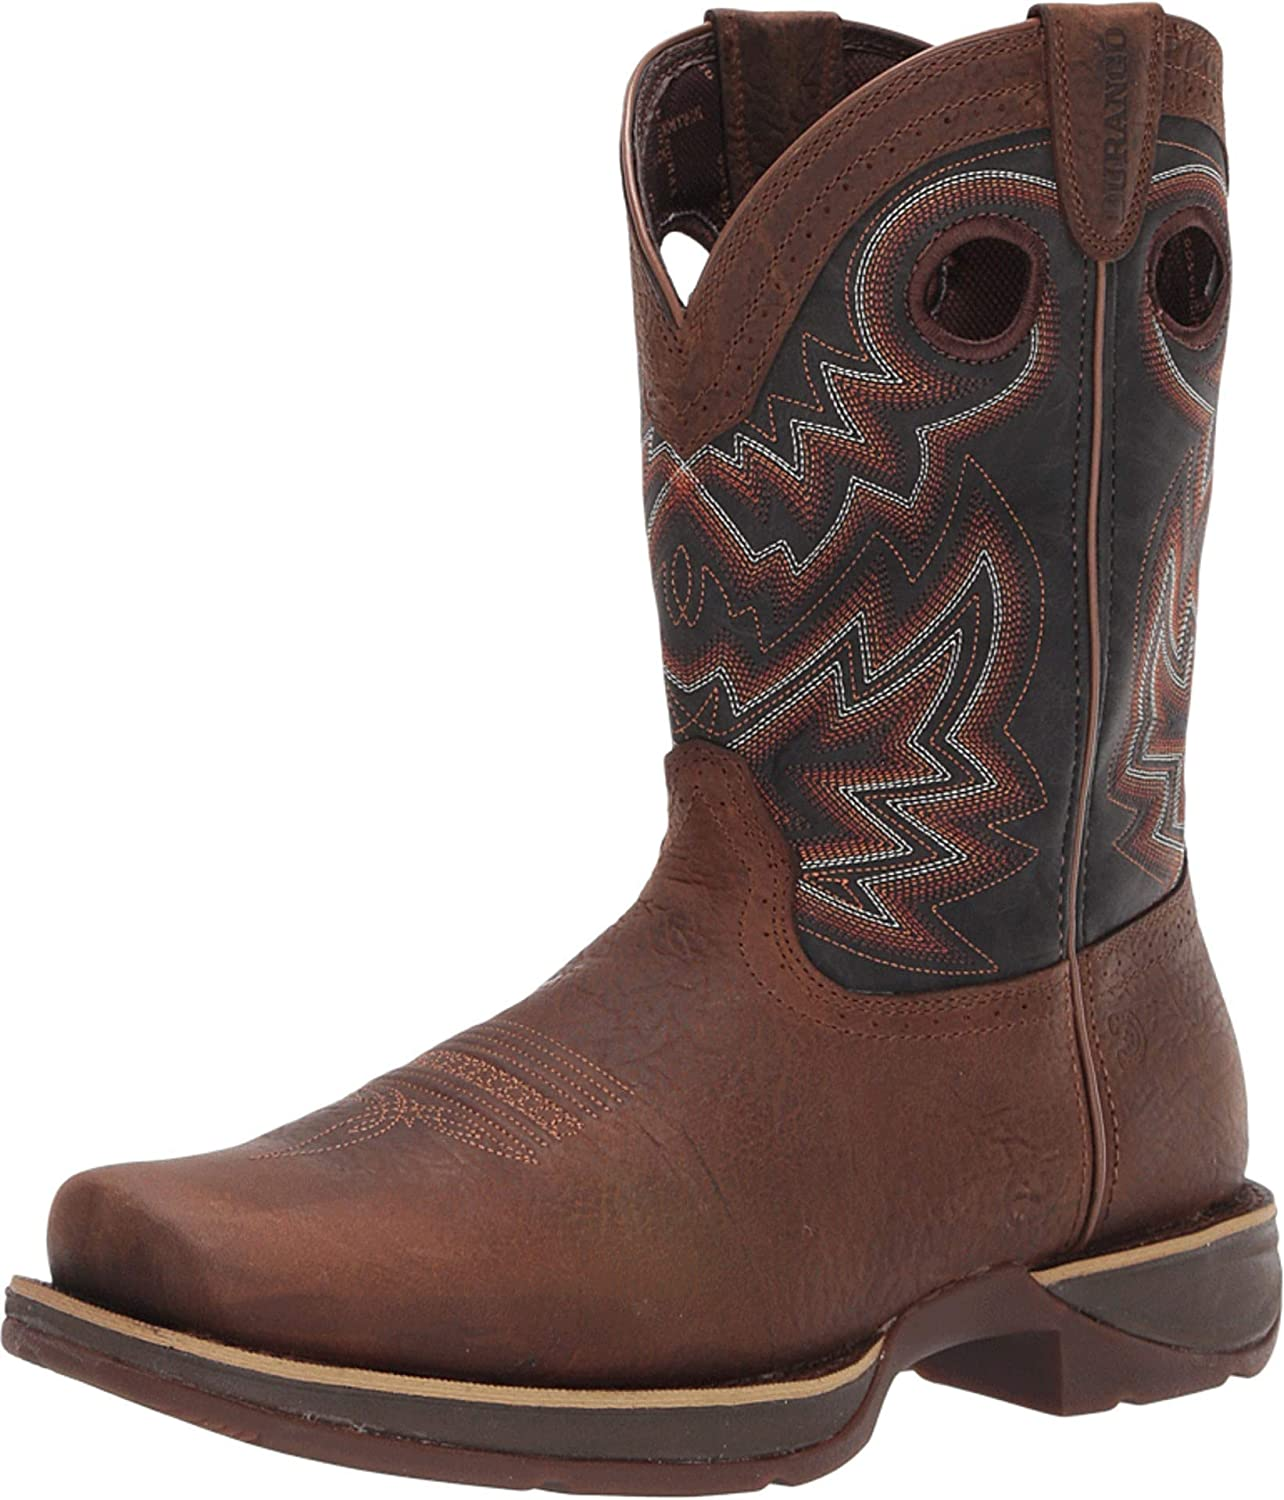 Durango Chocolate 2021 spring and summer new Boot excellence Western